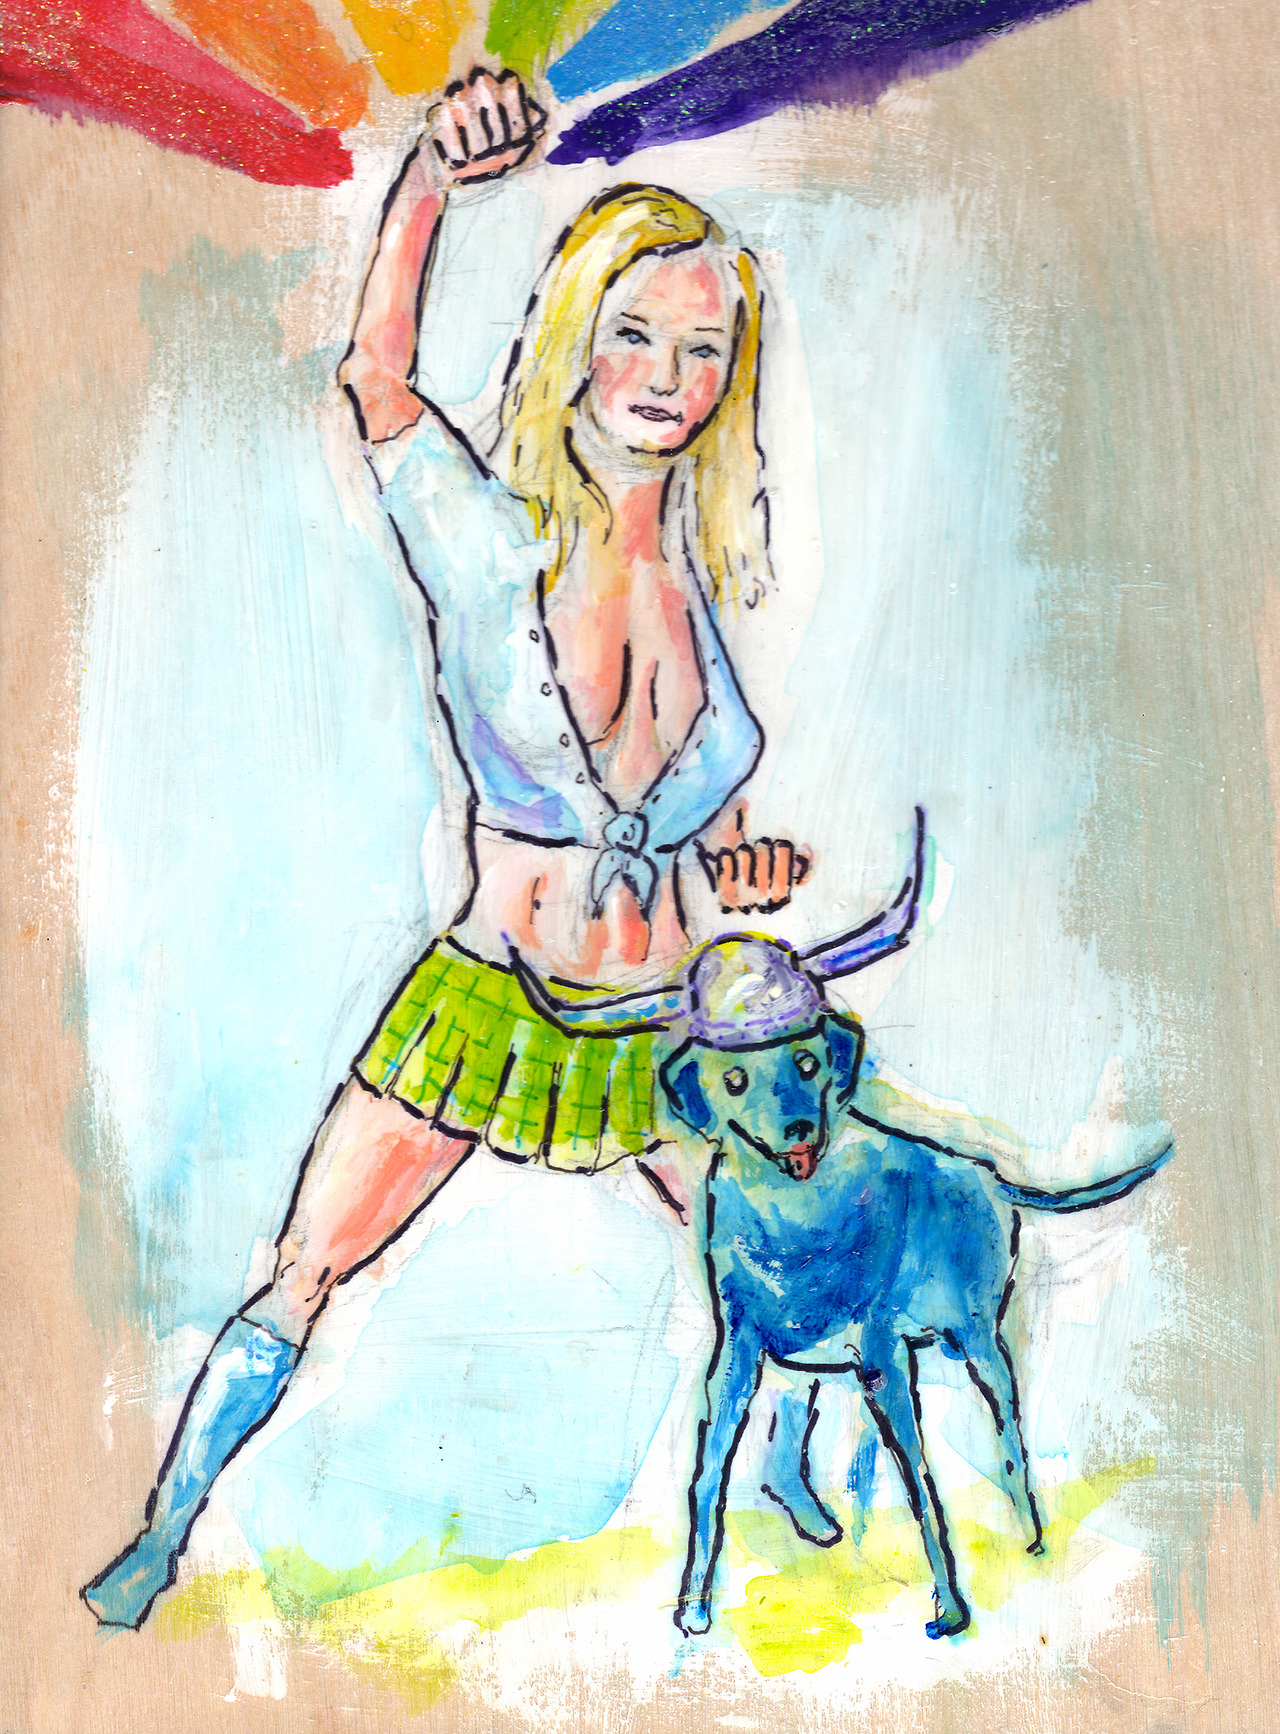 12/13/13 - Lolly Popper & Kona the Barbarian! This is another kickstarter reward piece. My good friend Kelli wanted Sally as a super heroine and a super dog. So, here ya have it. The rainbow might or might not have been Sally's idea.